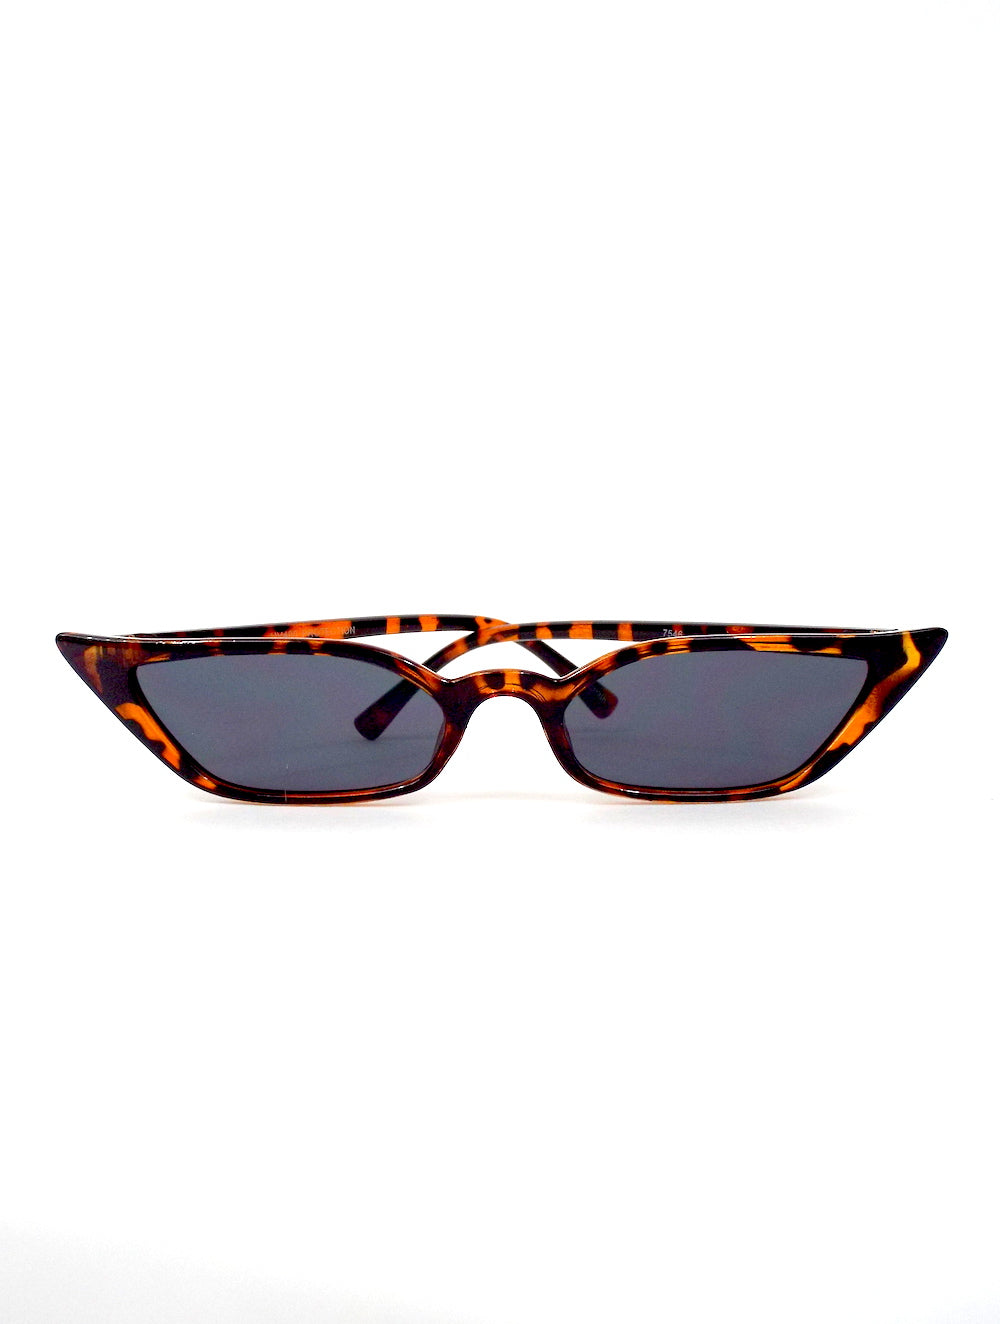 Sassy Summer Skinny Cat Eye Sunglasses